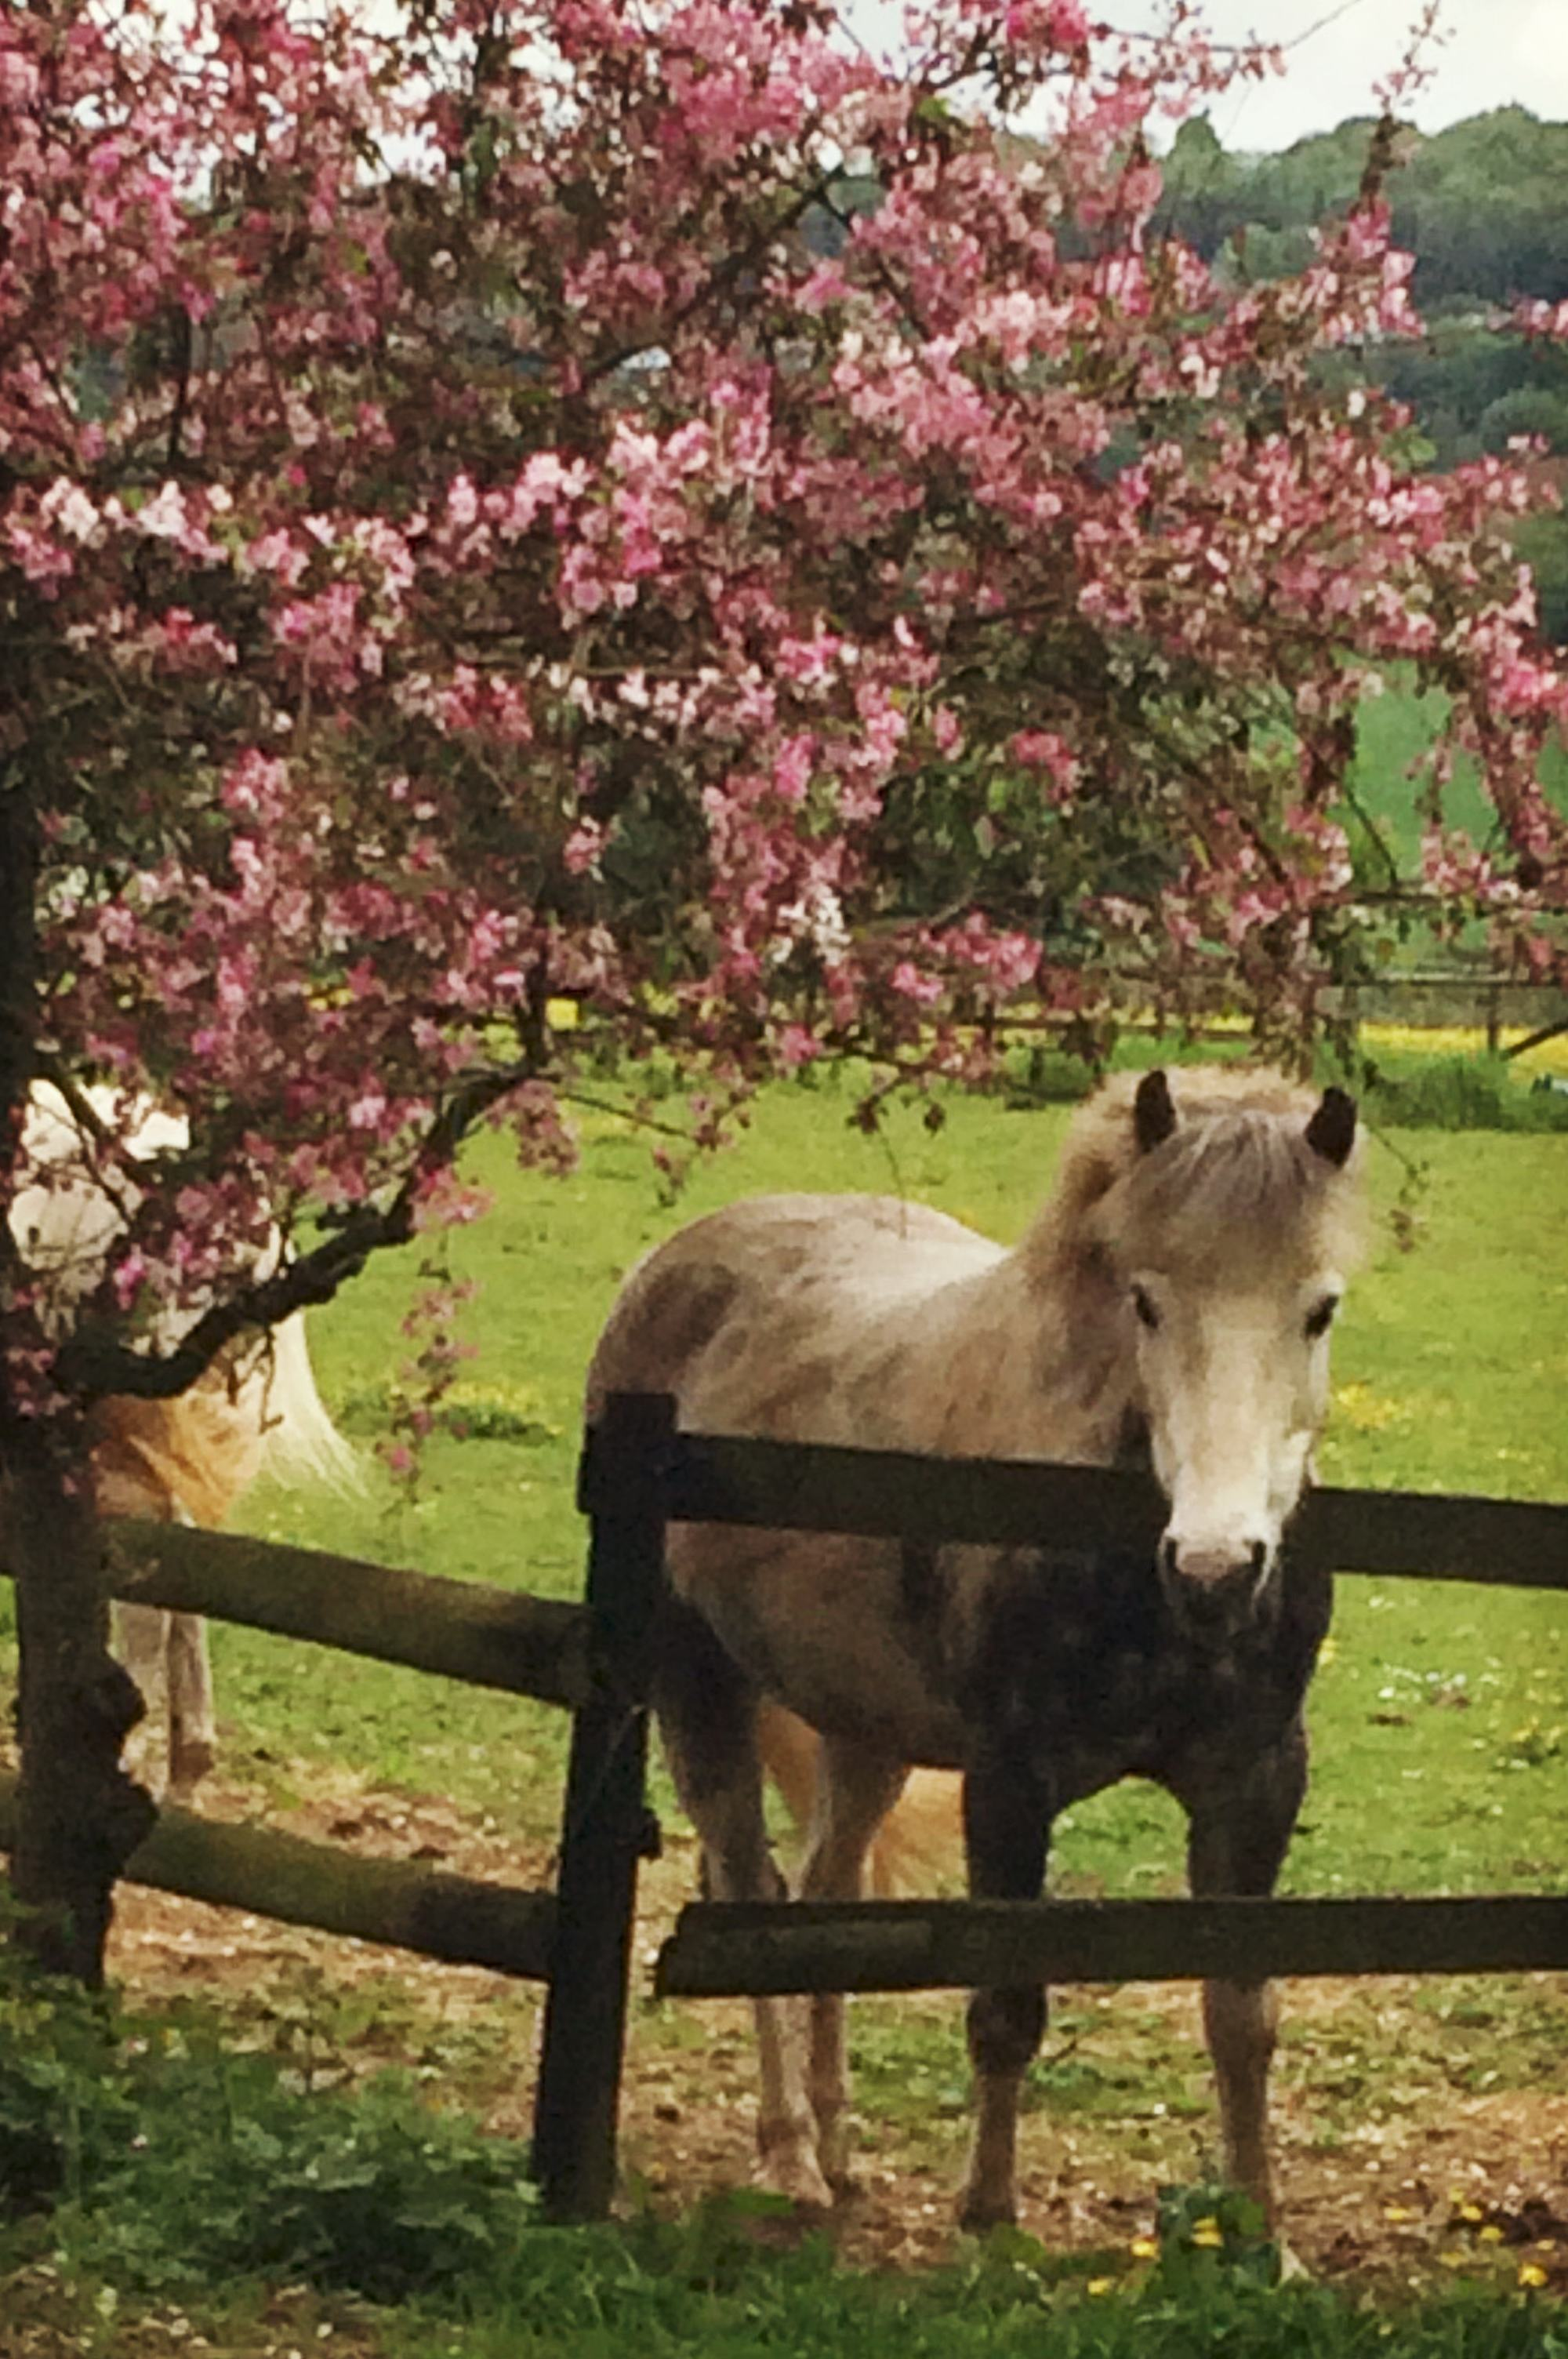 Pancake under The Blossom Tree